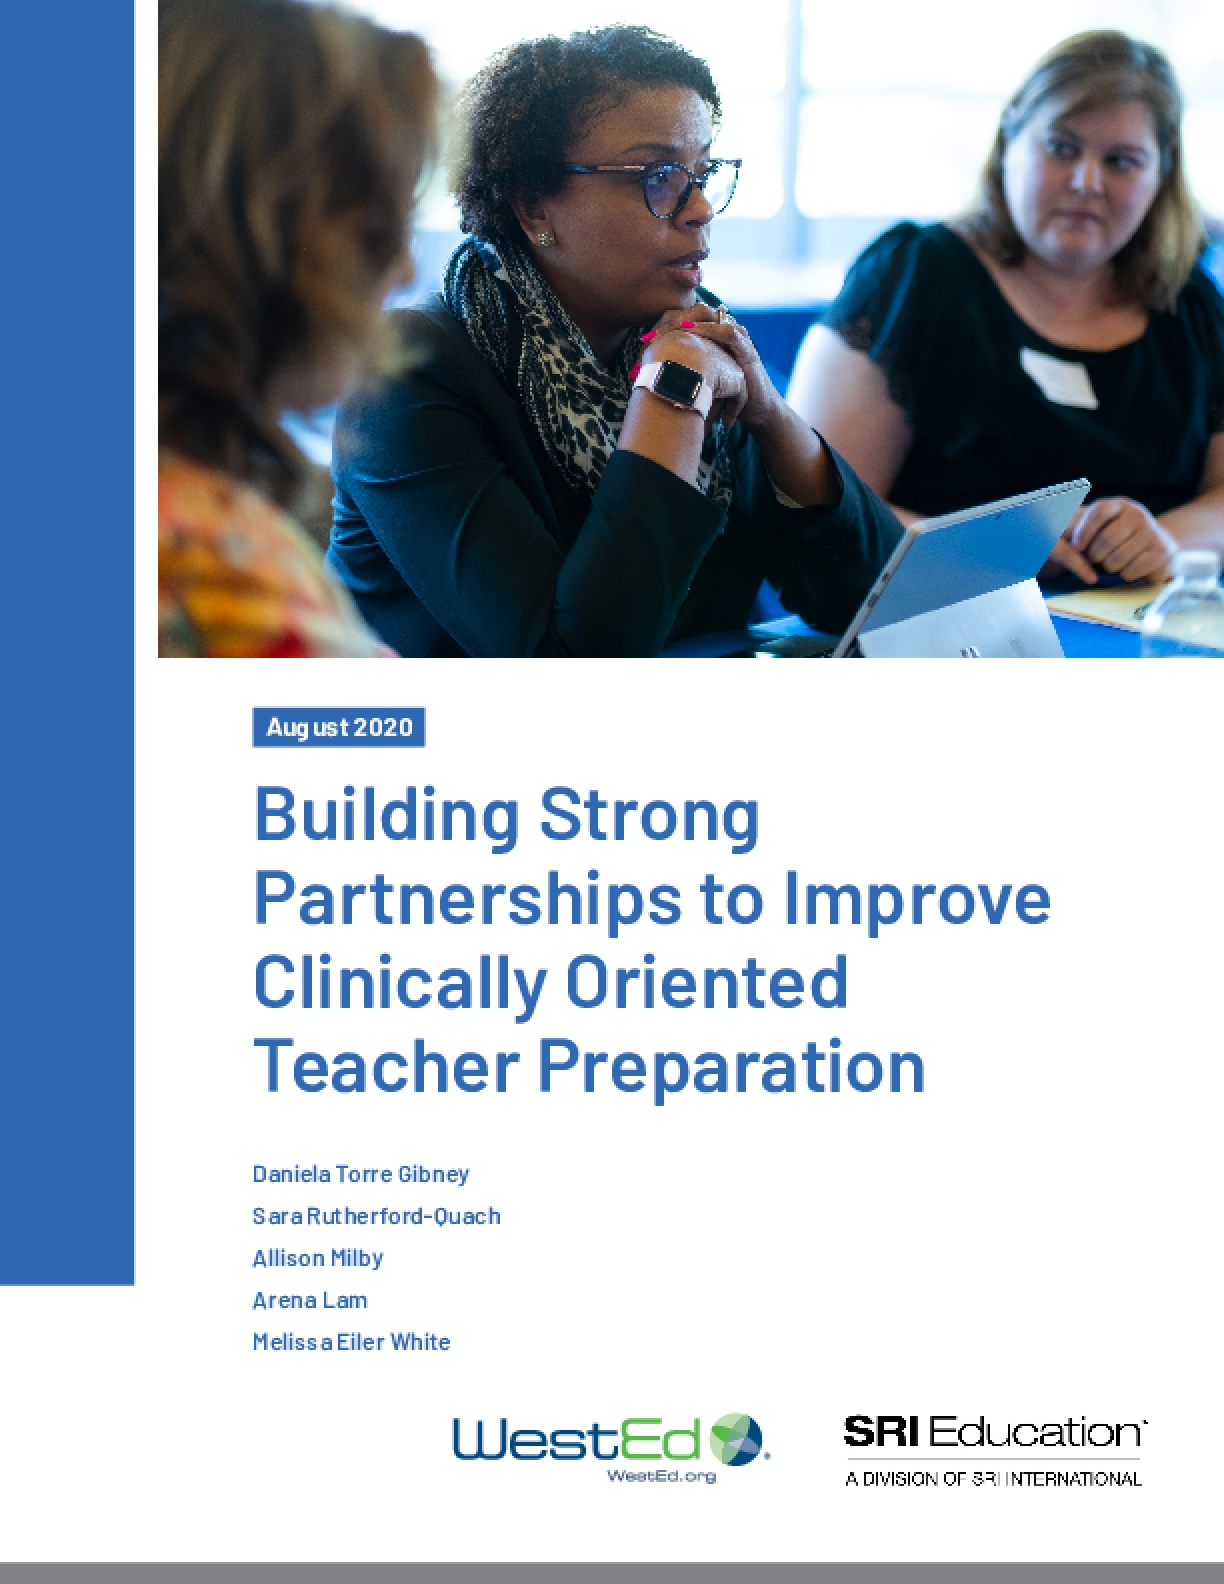 Building Strong Partnerships to Improve Clinically Oriented Teacher Preparation